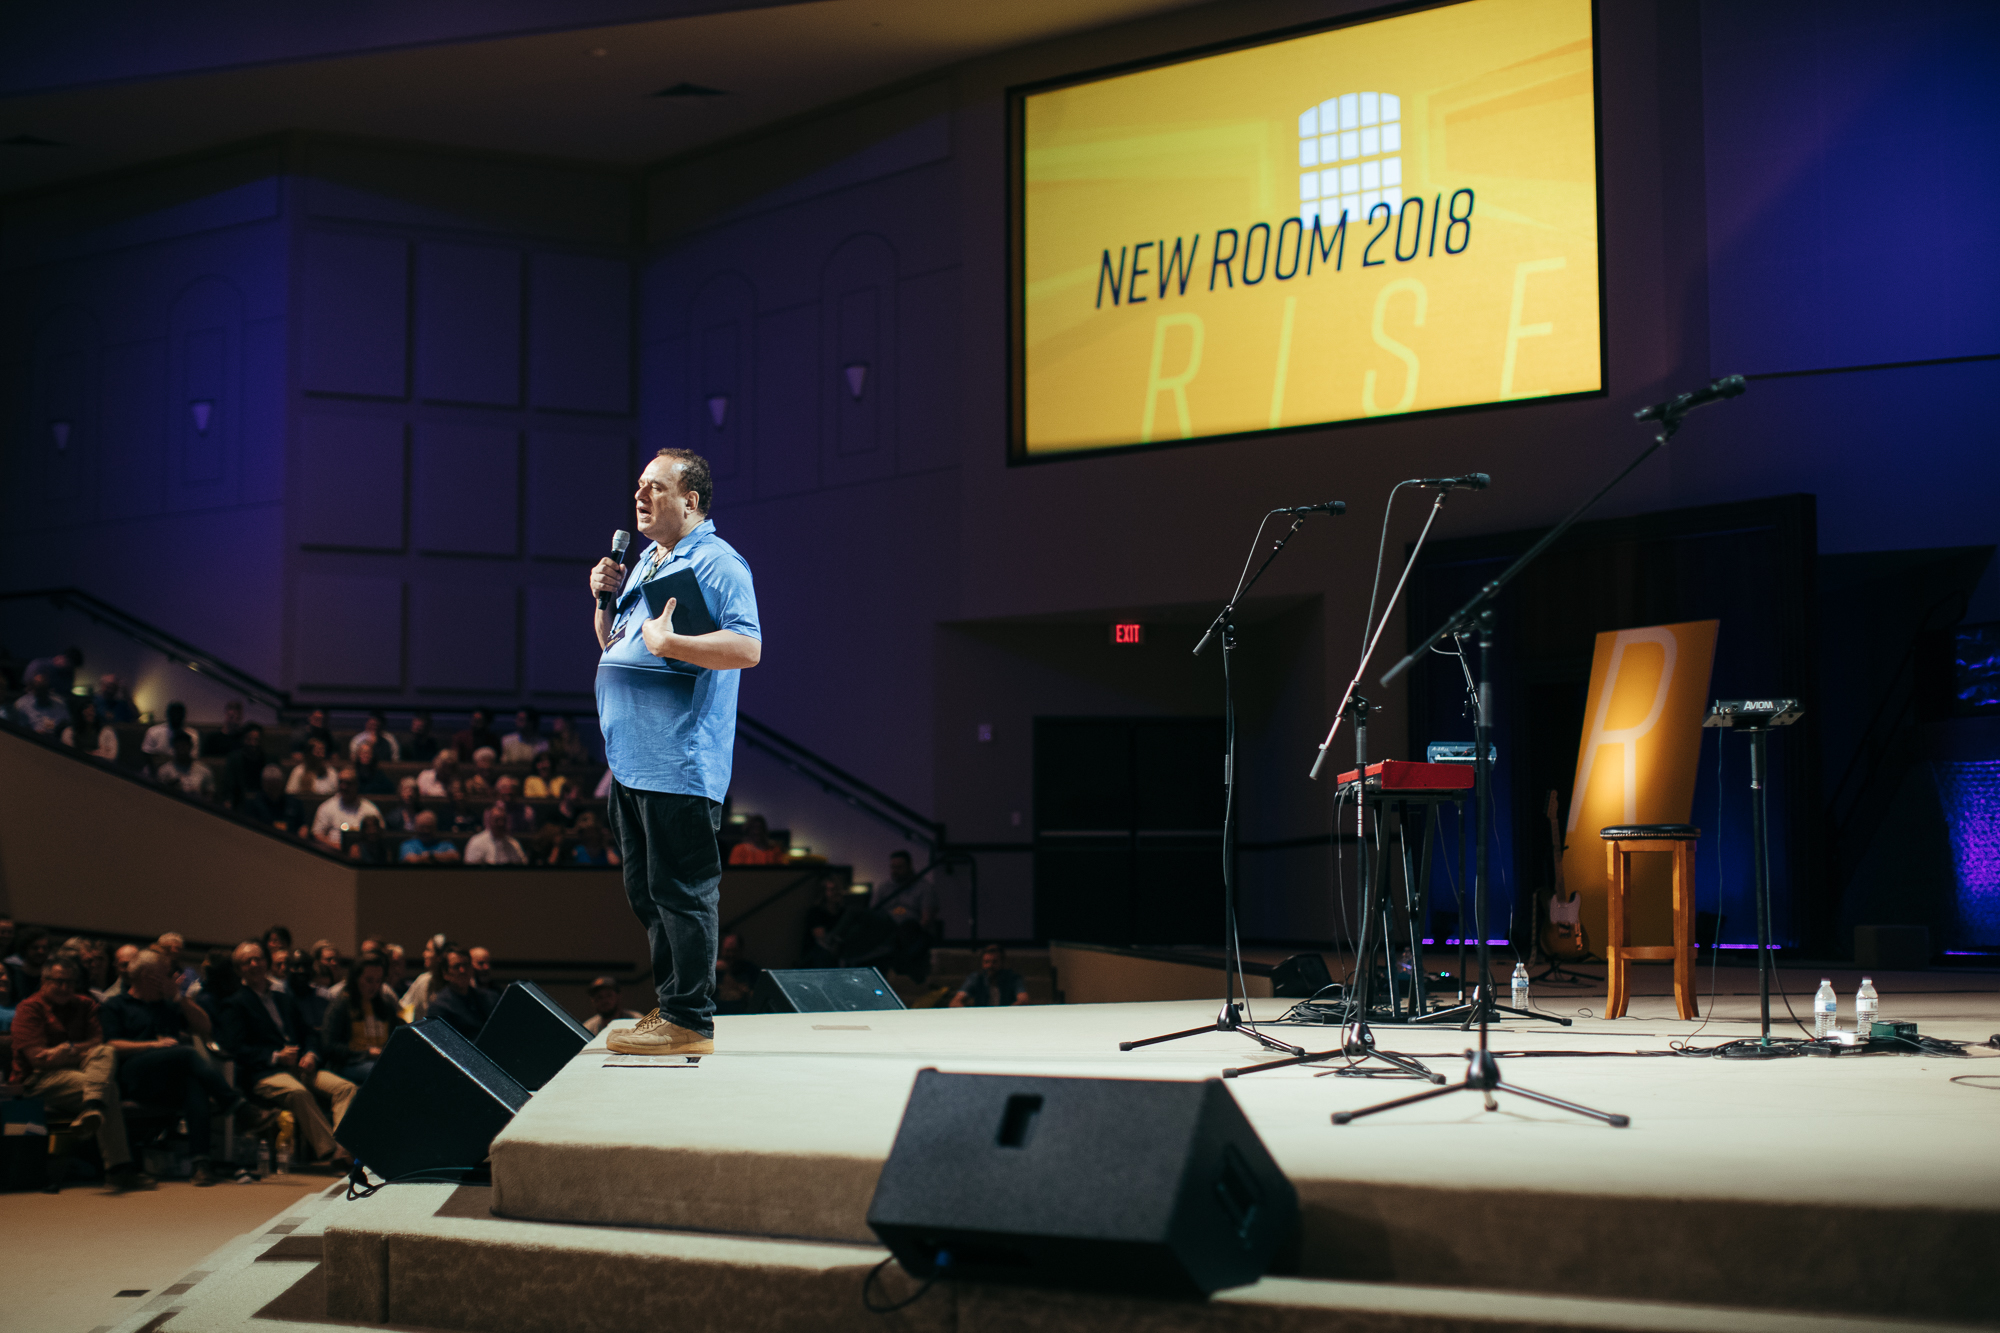 new room conference middle tennessee concert and live event photographers ©2018abigailbobophotography-57.jpg